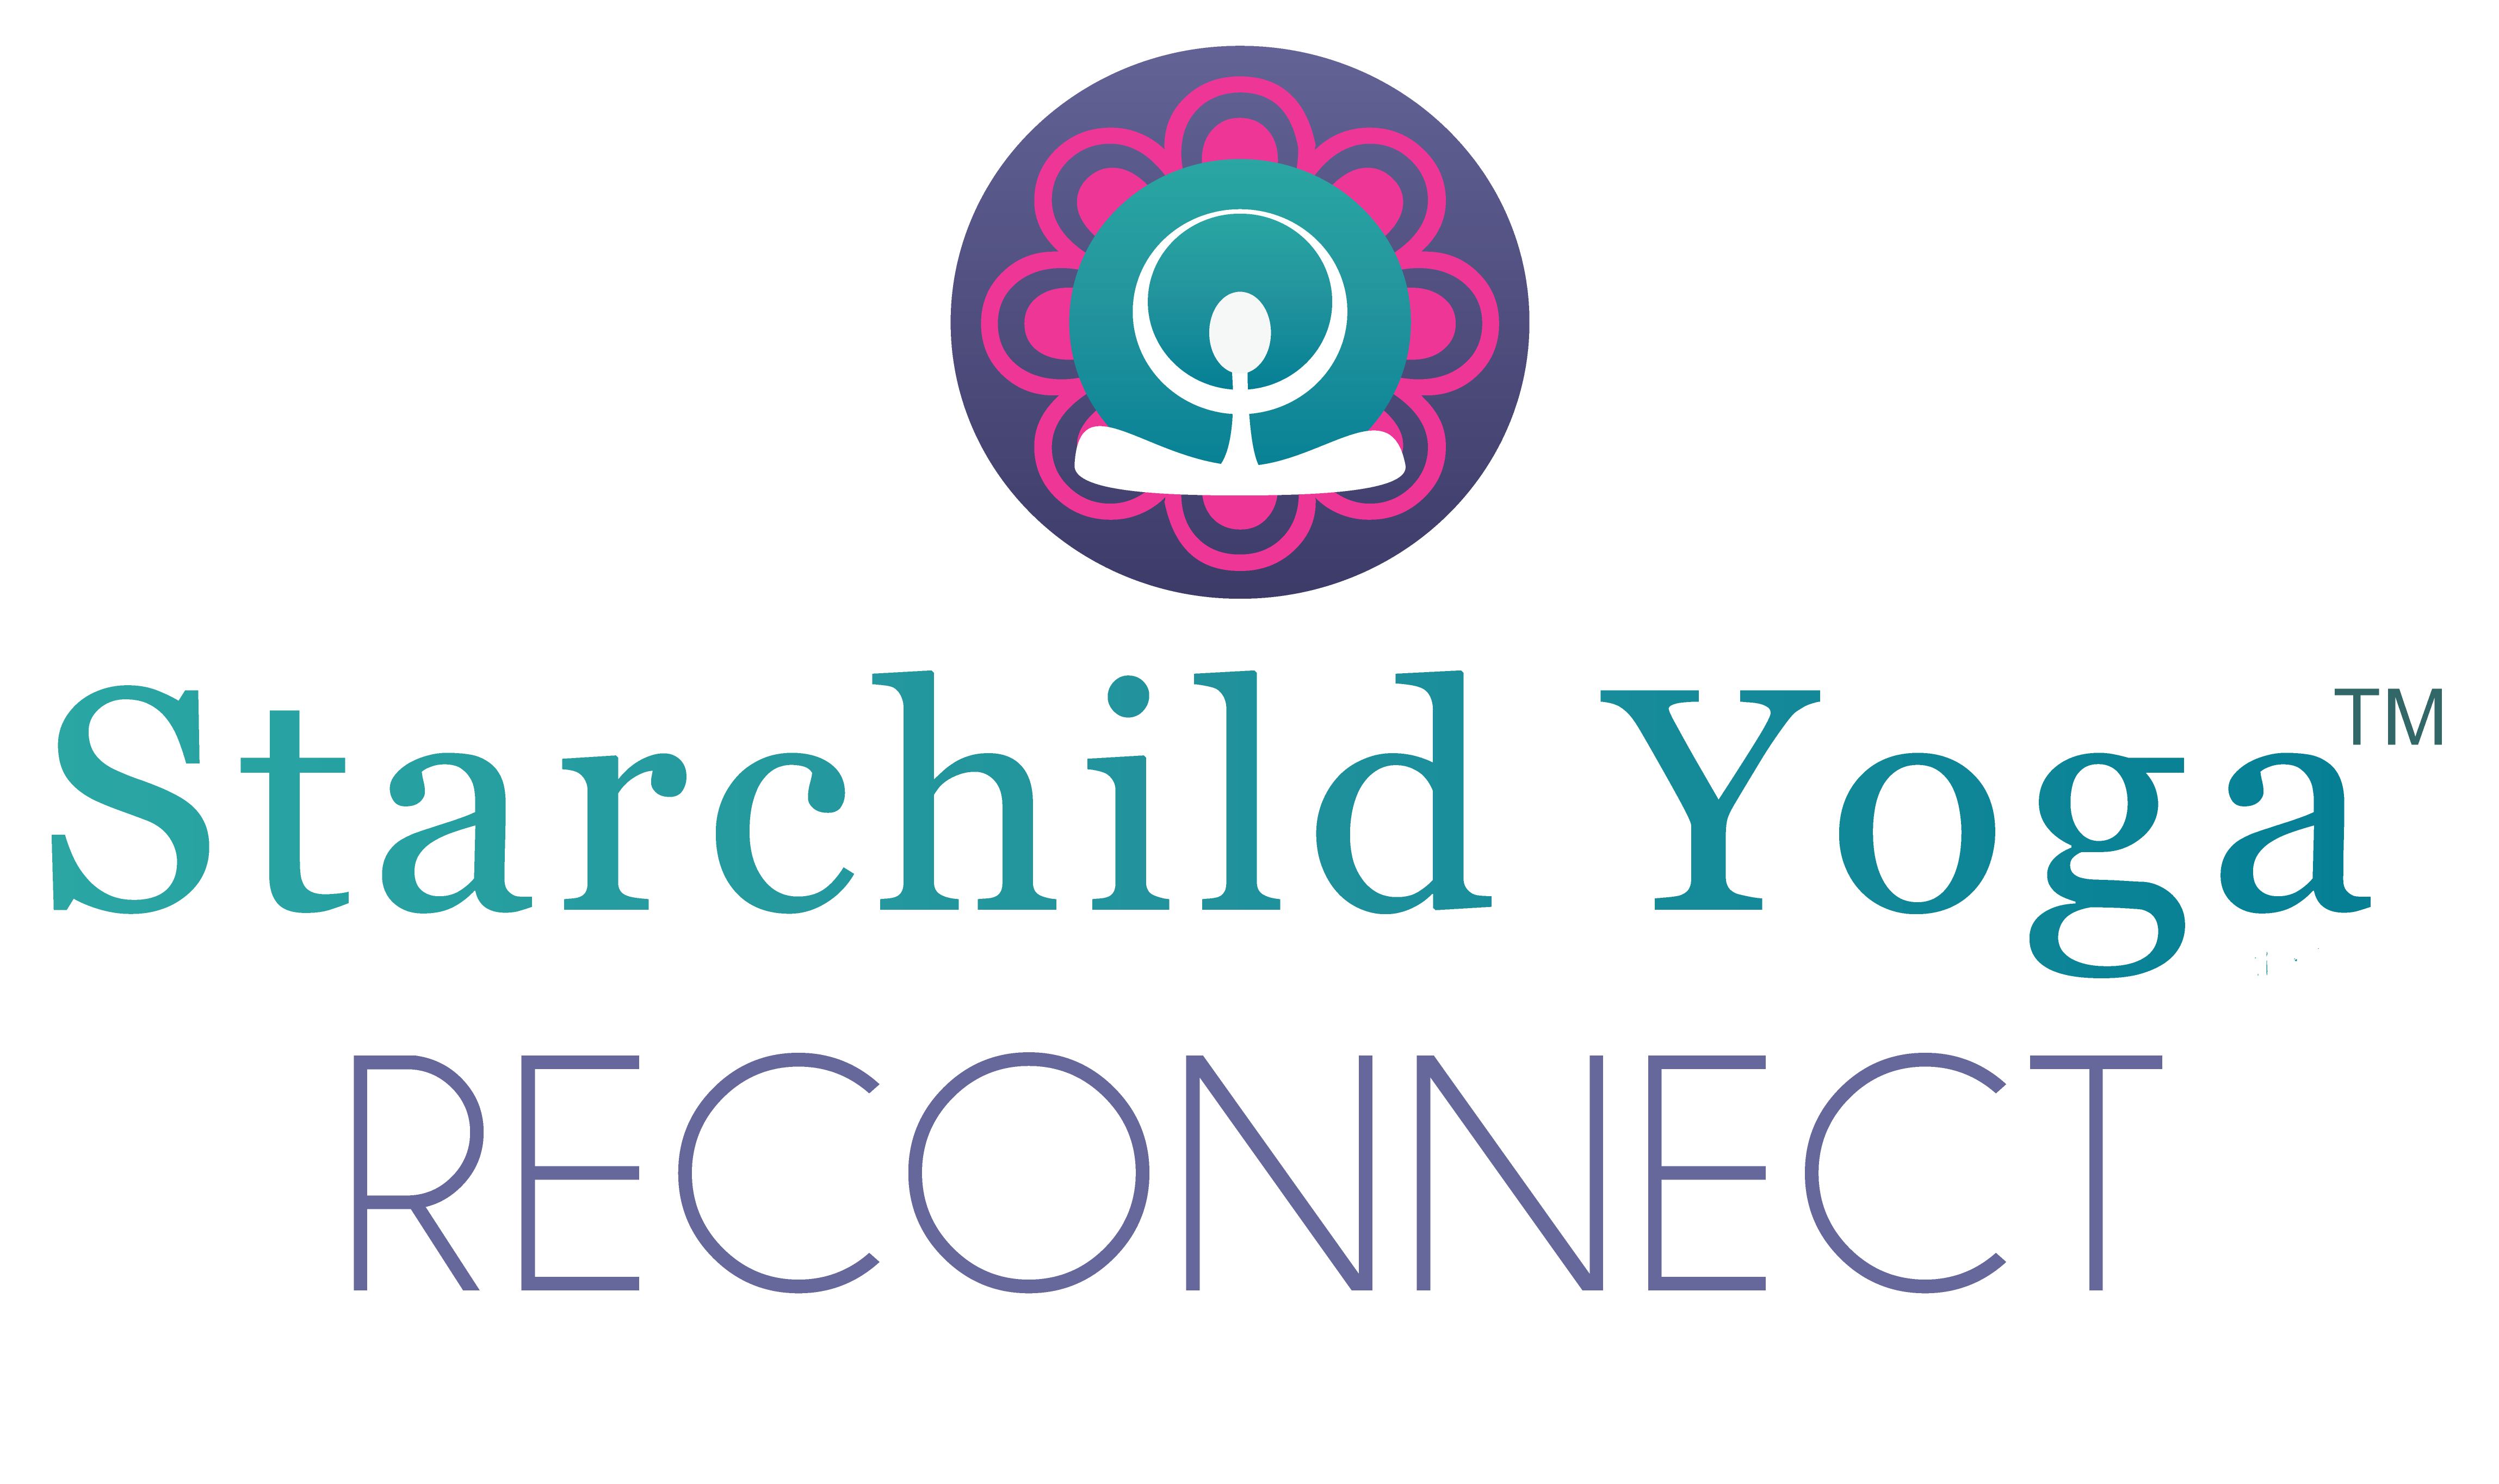 StarchildYoga RECONNECT-23